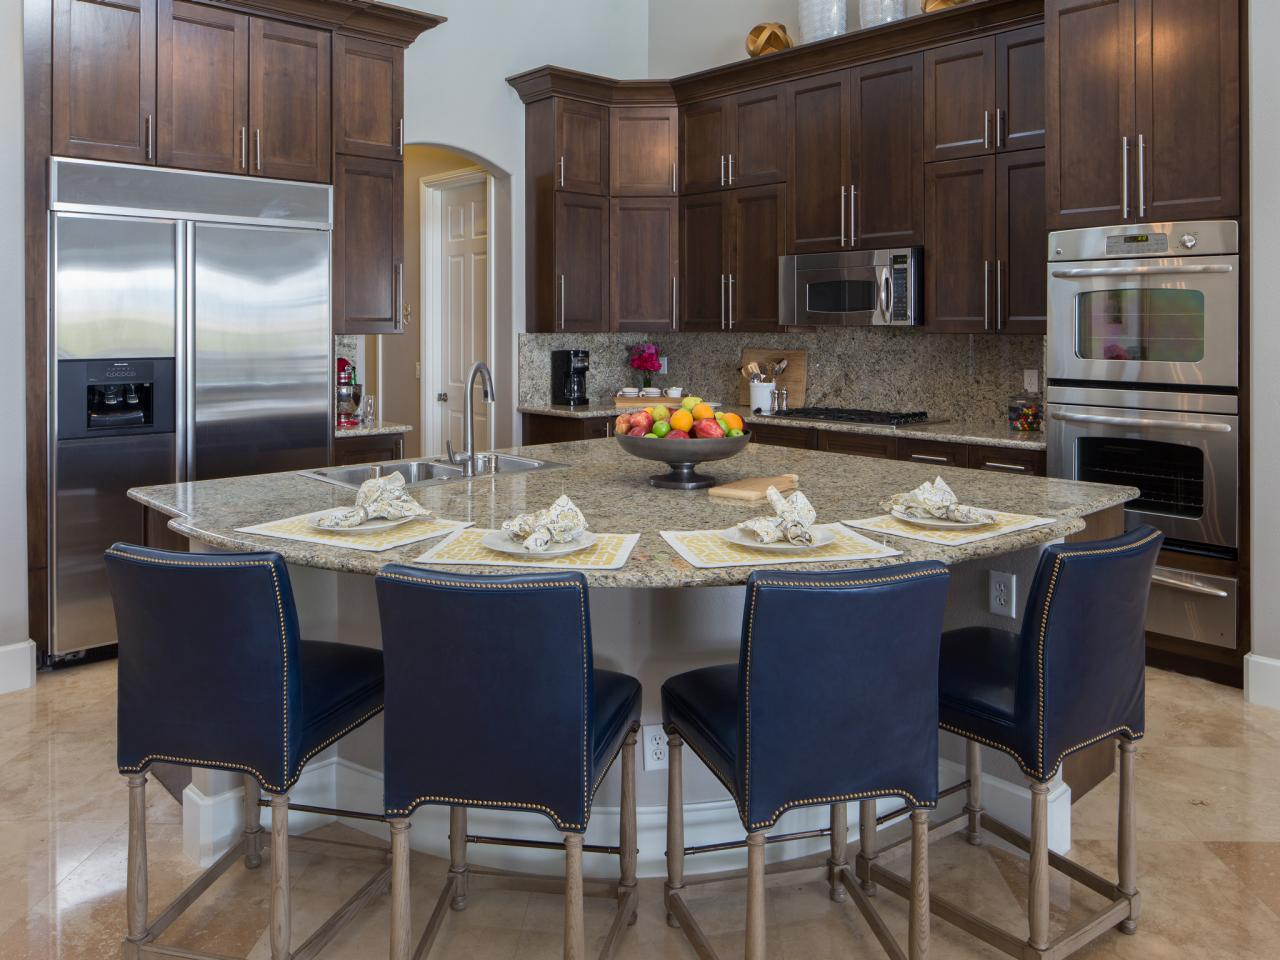 kitchen islands uk exhaust fan installation 8 key considerations when designing a island lighting extraction